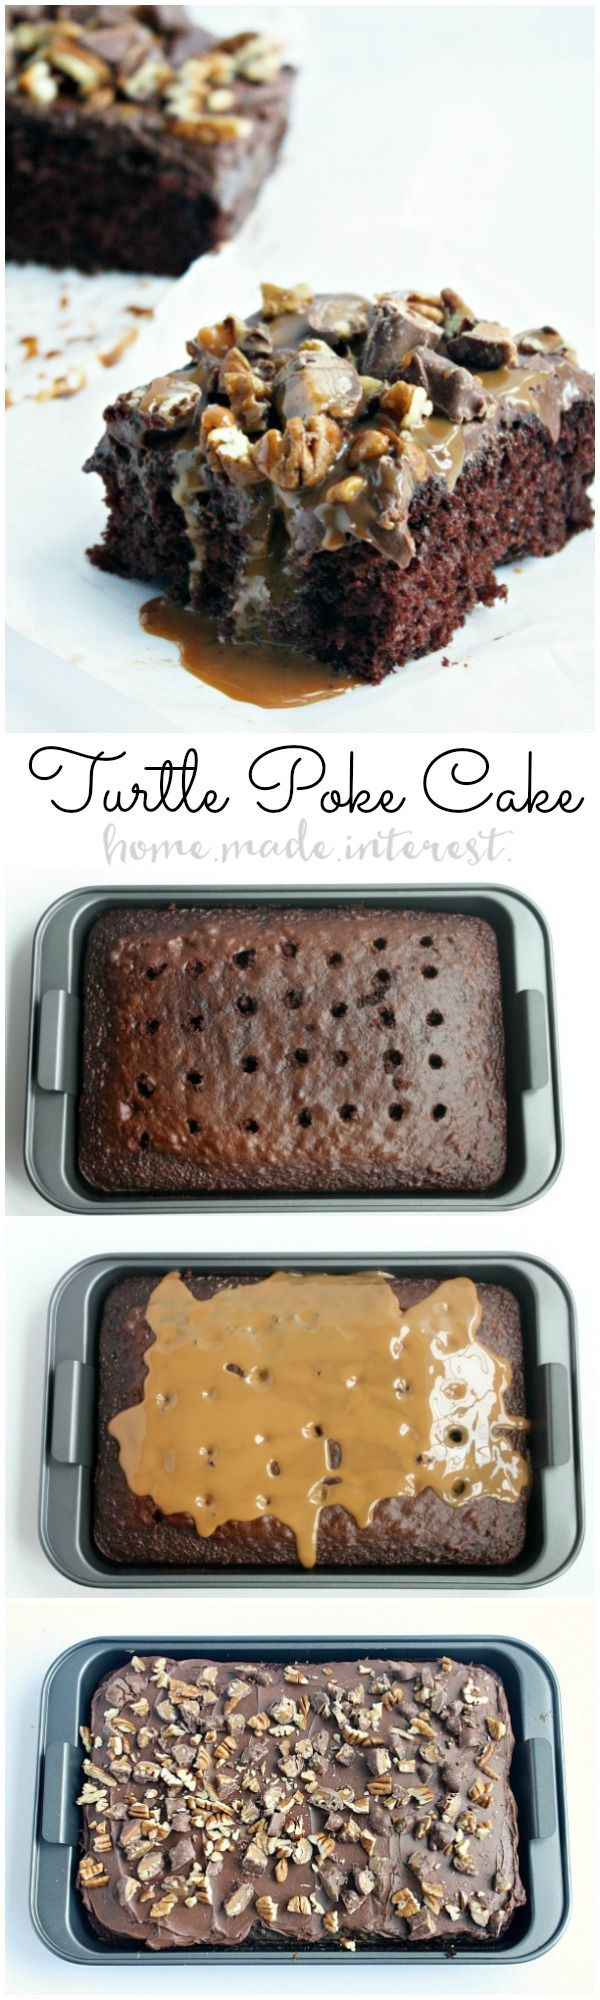 best 25 home made cake ideas on pinterest home made cupcakes poke cakes are such an easy cake recipe to make this turtle poke cake is